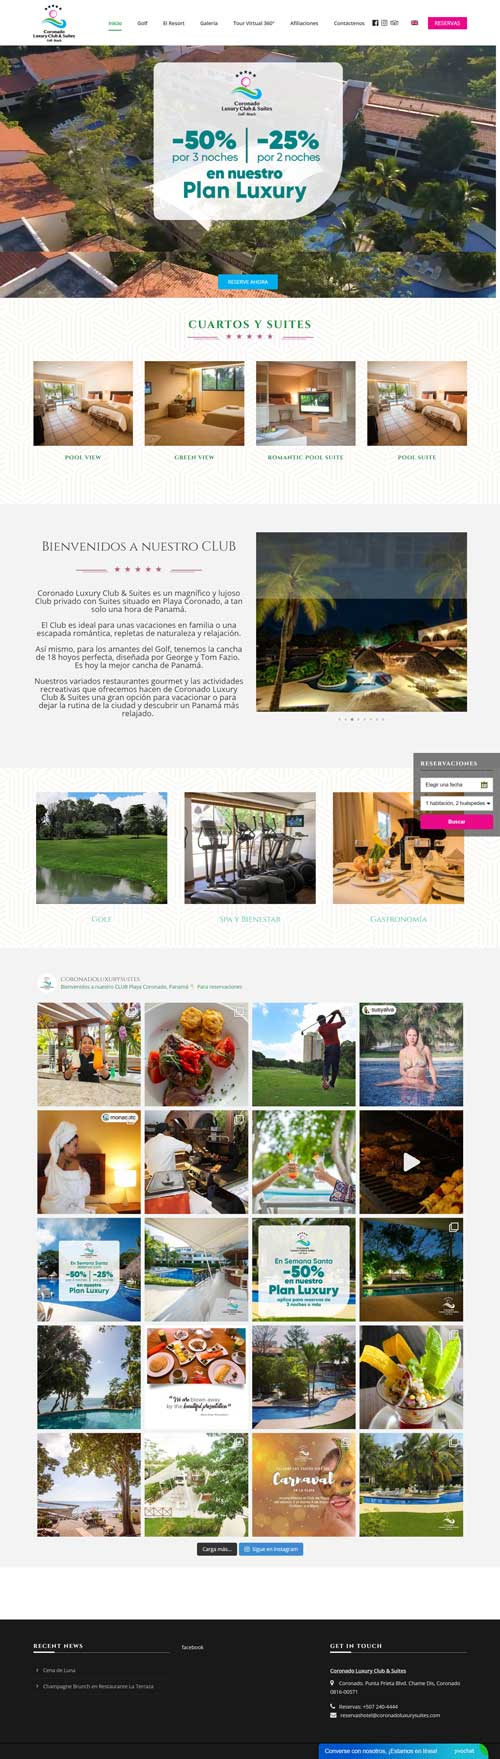 Diseño web en Panamá - Coronado Luxury Club & Suites